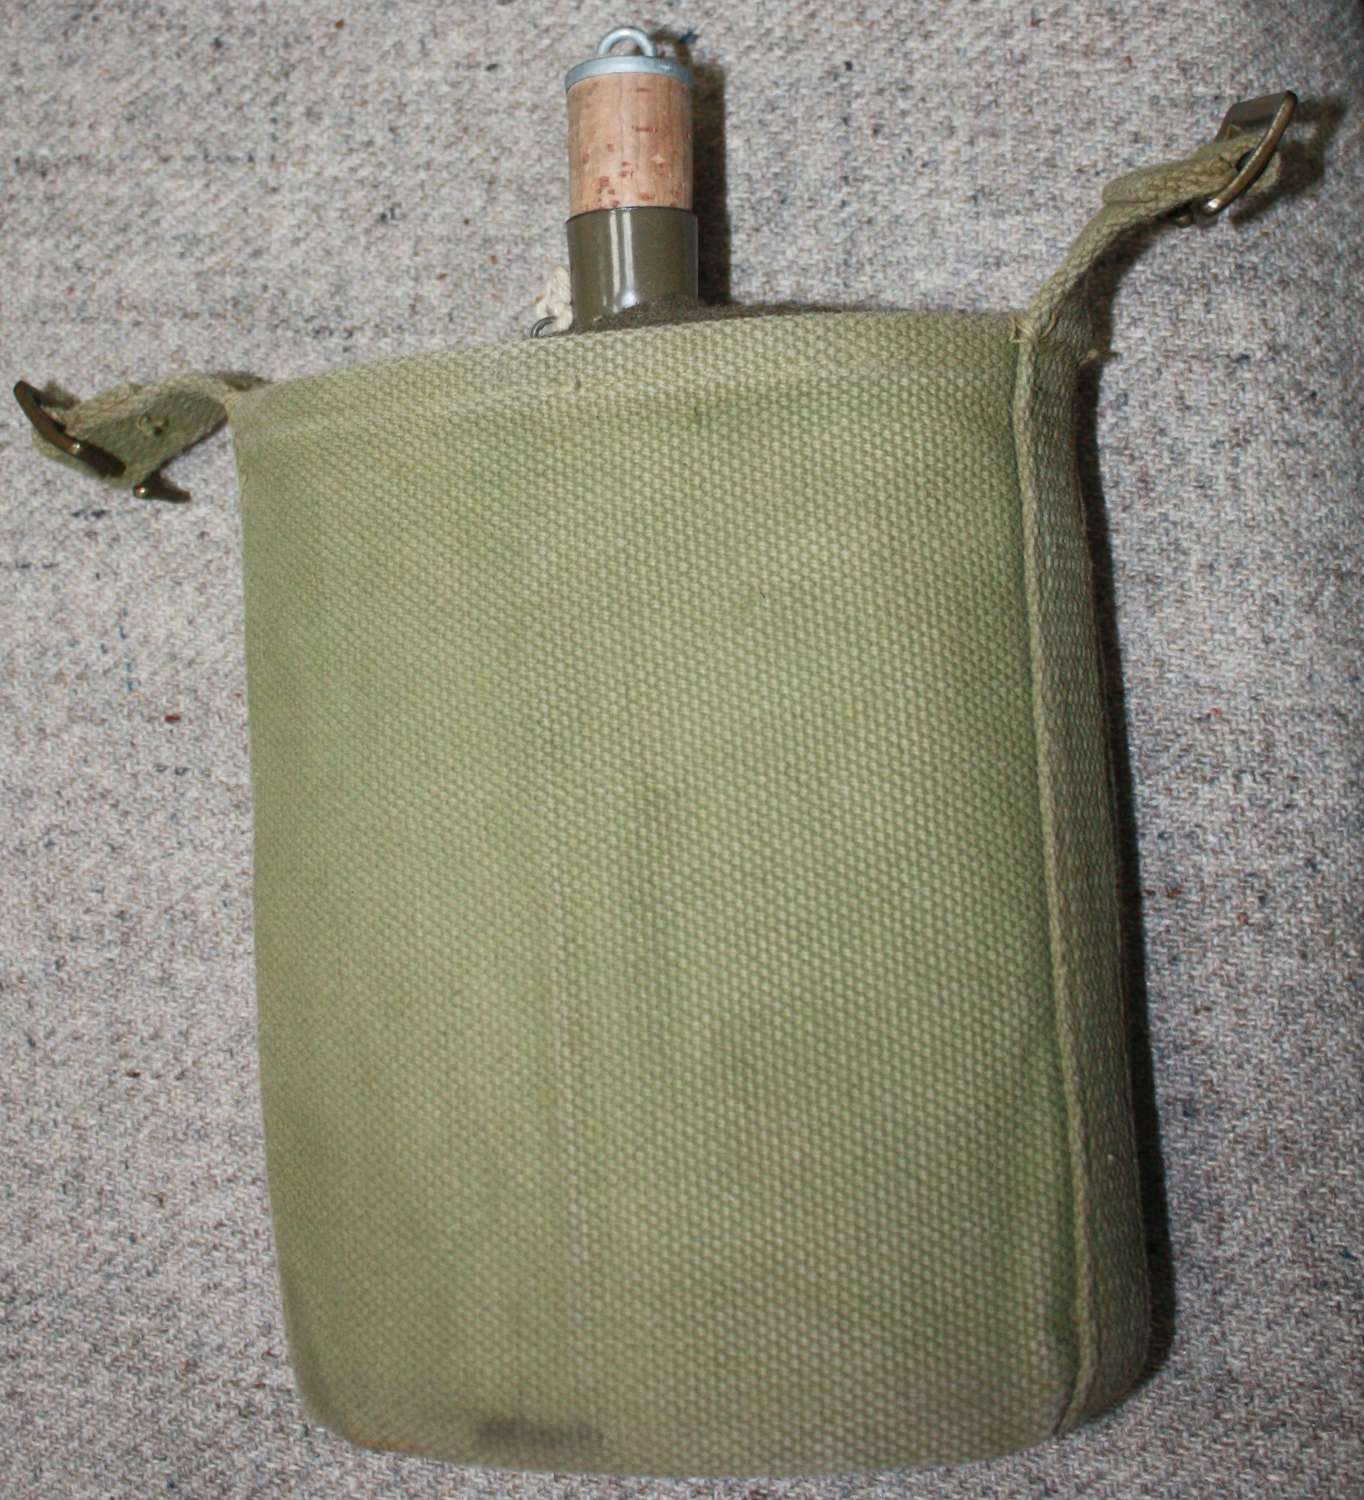 A WWII 37 PATTERN WATER BOTTLE AND CRADLE